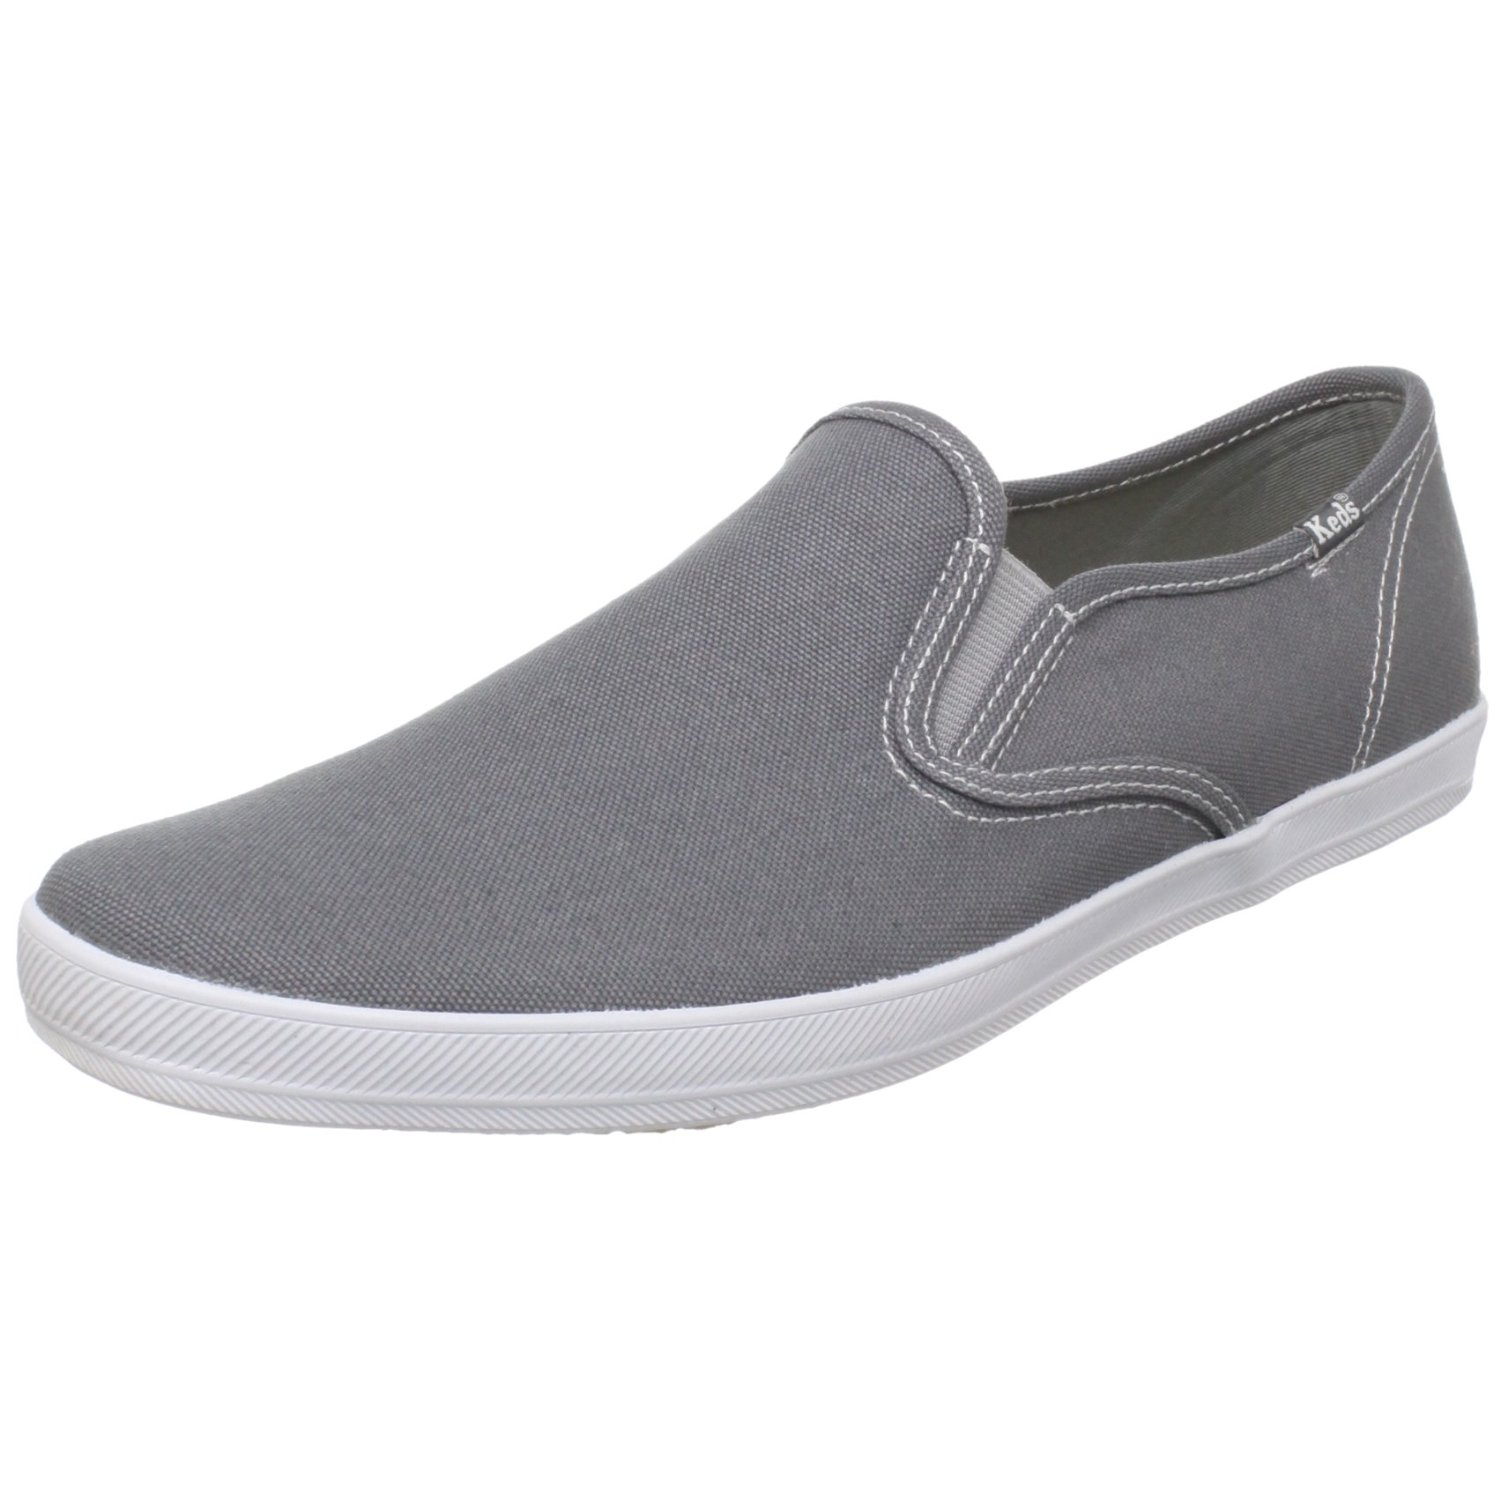 Grey Canvas Slip On Shoes Mens